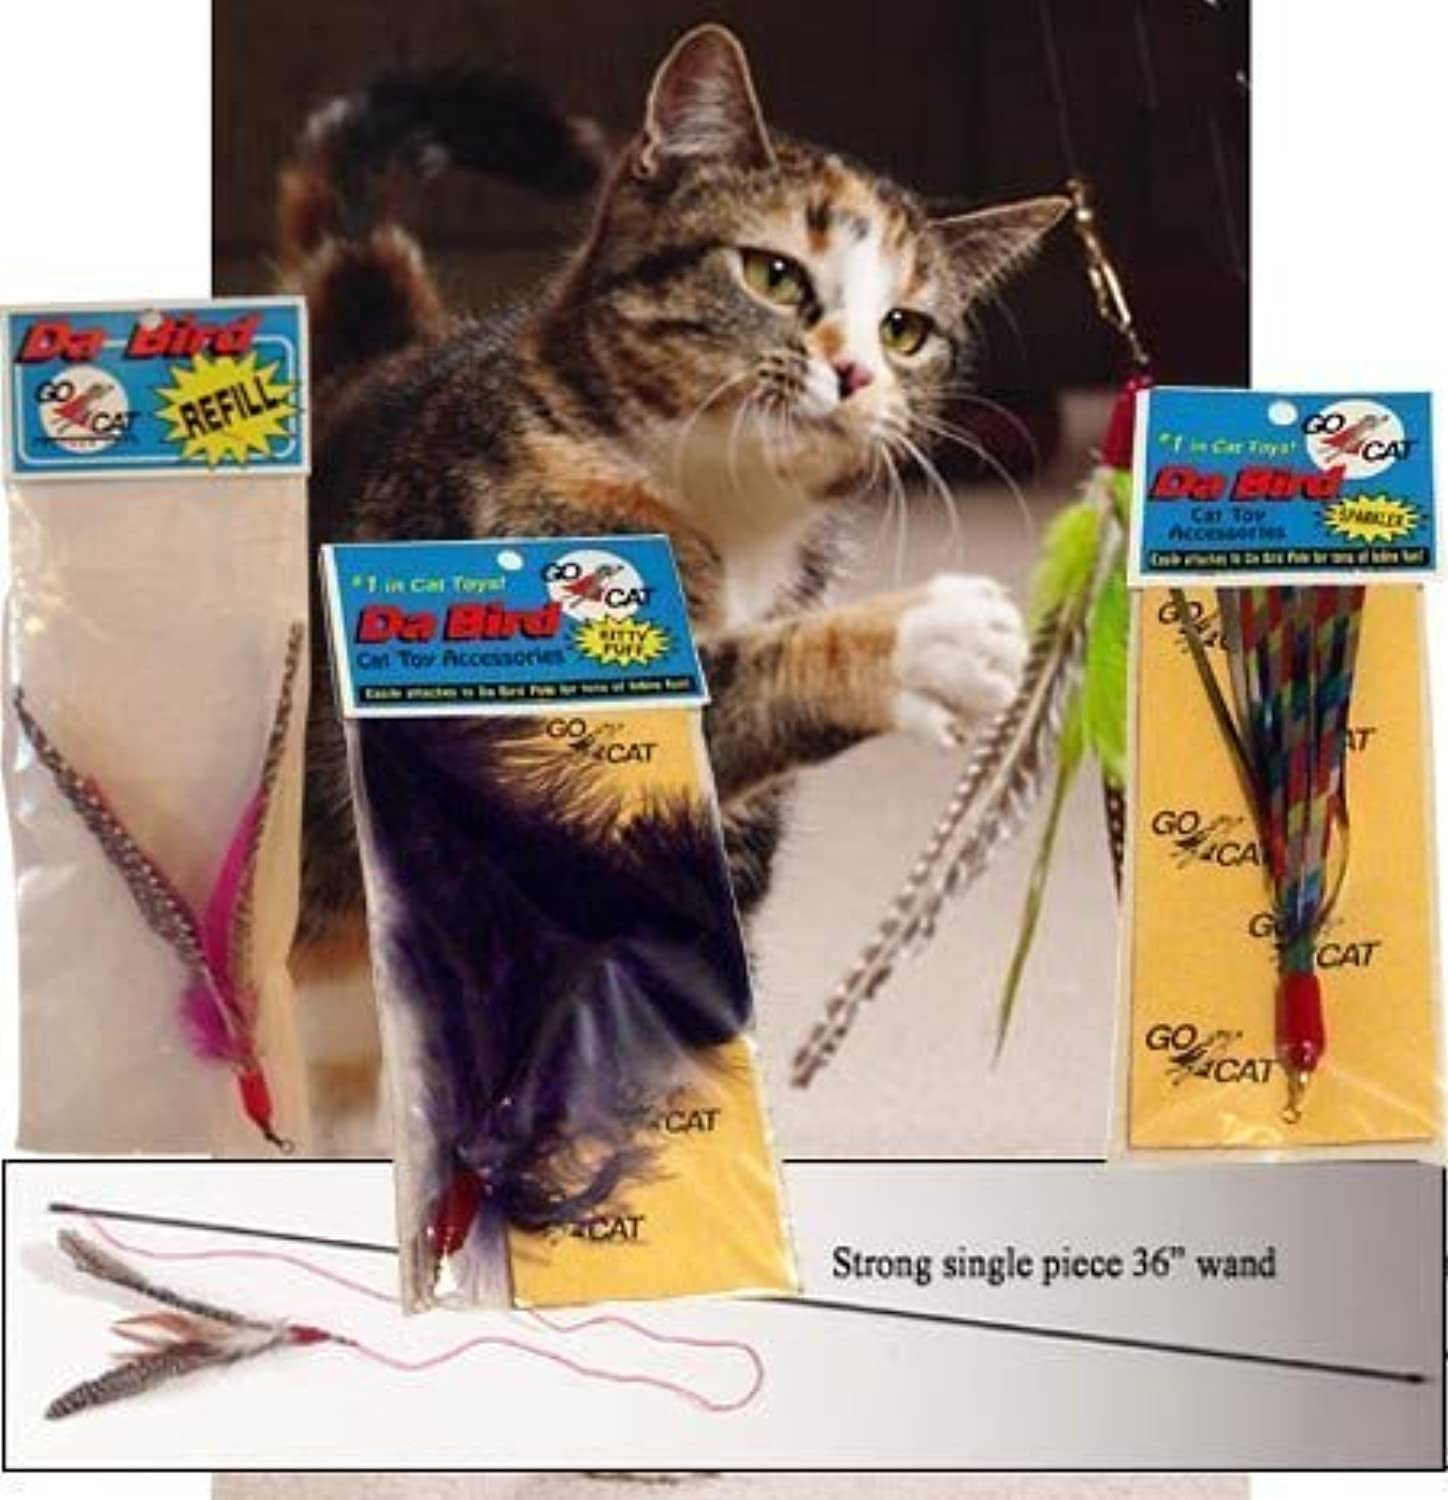 Litterboy pets The Da Bird Super Pack (Includes 1 Da Bird Original 36  Single Pole Cat Toy, Feather Refill, Sparkly Attachment, Kitty Puff Attachment & Peacock Feather)